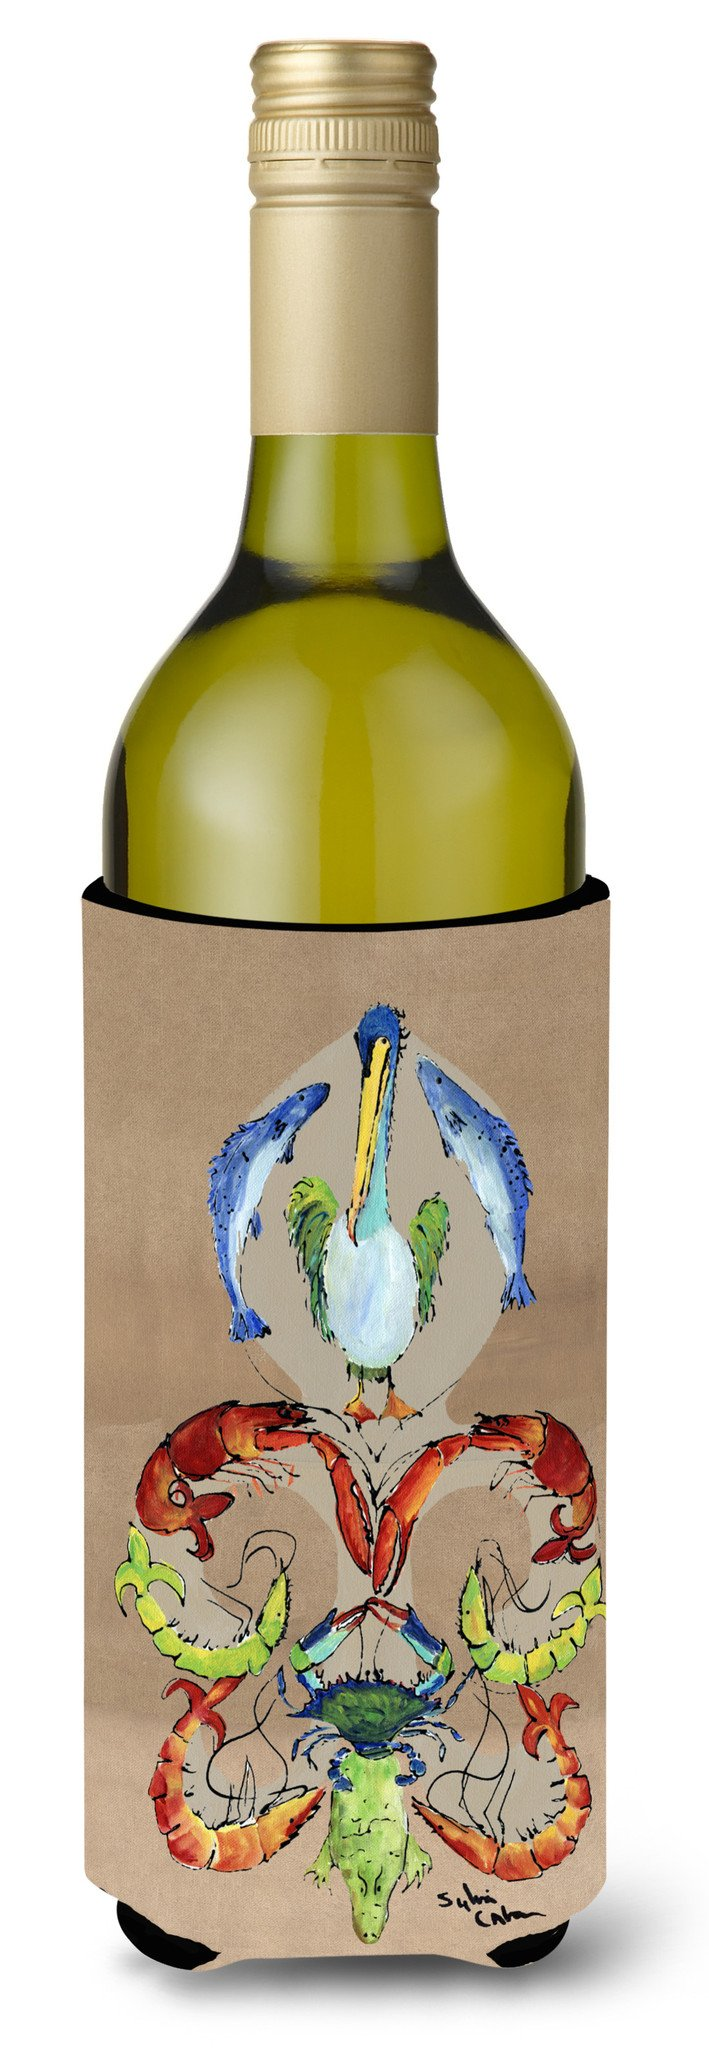 Crab Shrimp Pelican Crab and Gator Fleur de lis Wine Bottle Beverage Insulator Beverage Insulator Hugger by Caroline's Treasures